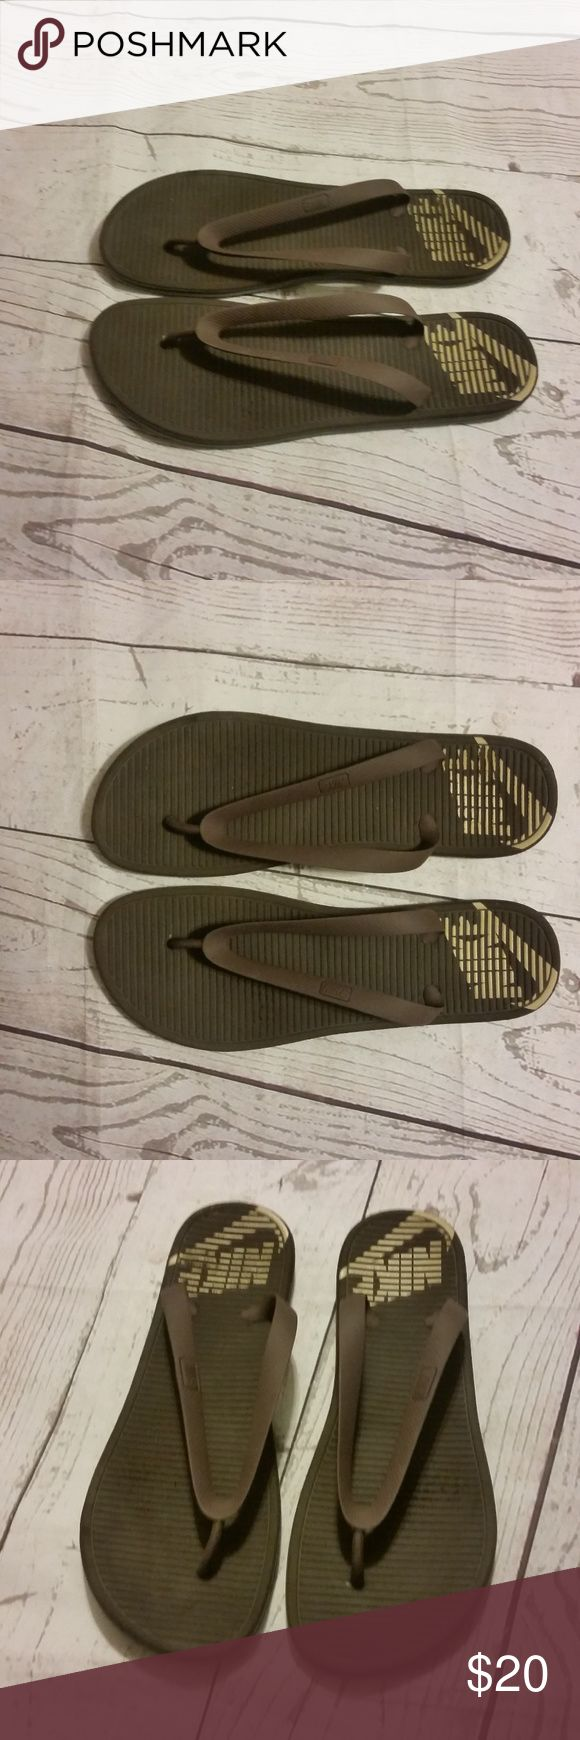 Nike Mens Flip Flop Sandals Size 15 Brown Gently used Nike Mens Sandals Flip Flops Rubber Soles Brown Great for the pool, beach, etc.  Trusted Seller. Fast shipping.  Please check out my other listings. Items being added daily. Thanks for stopping in!  Posh By Design Nike Shoes Sandals & Flip-Flops